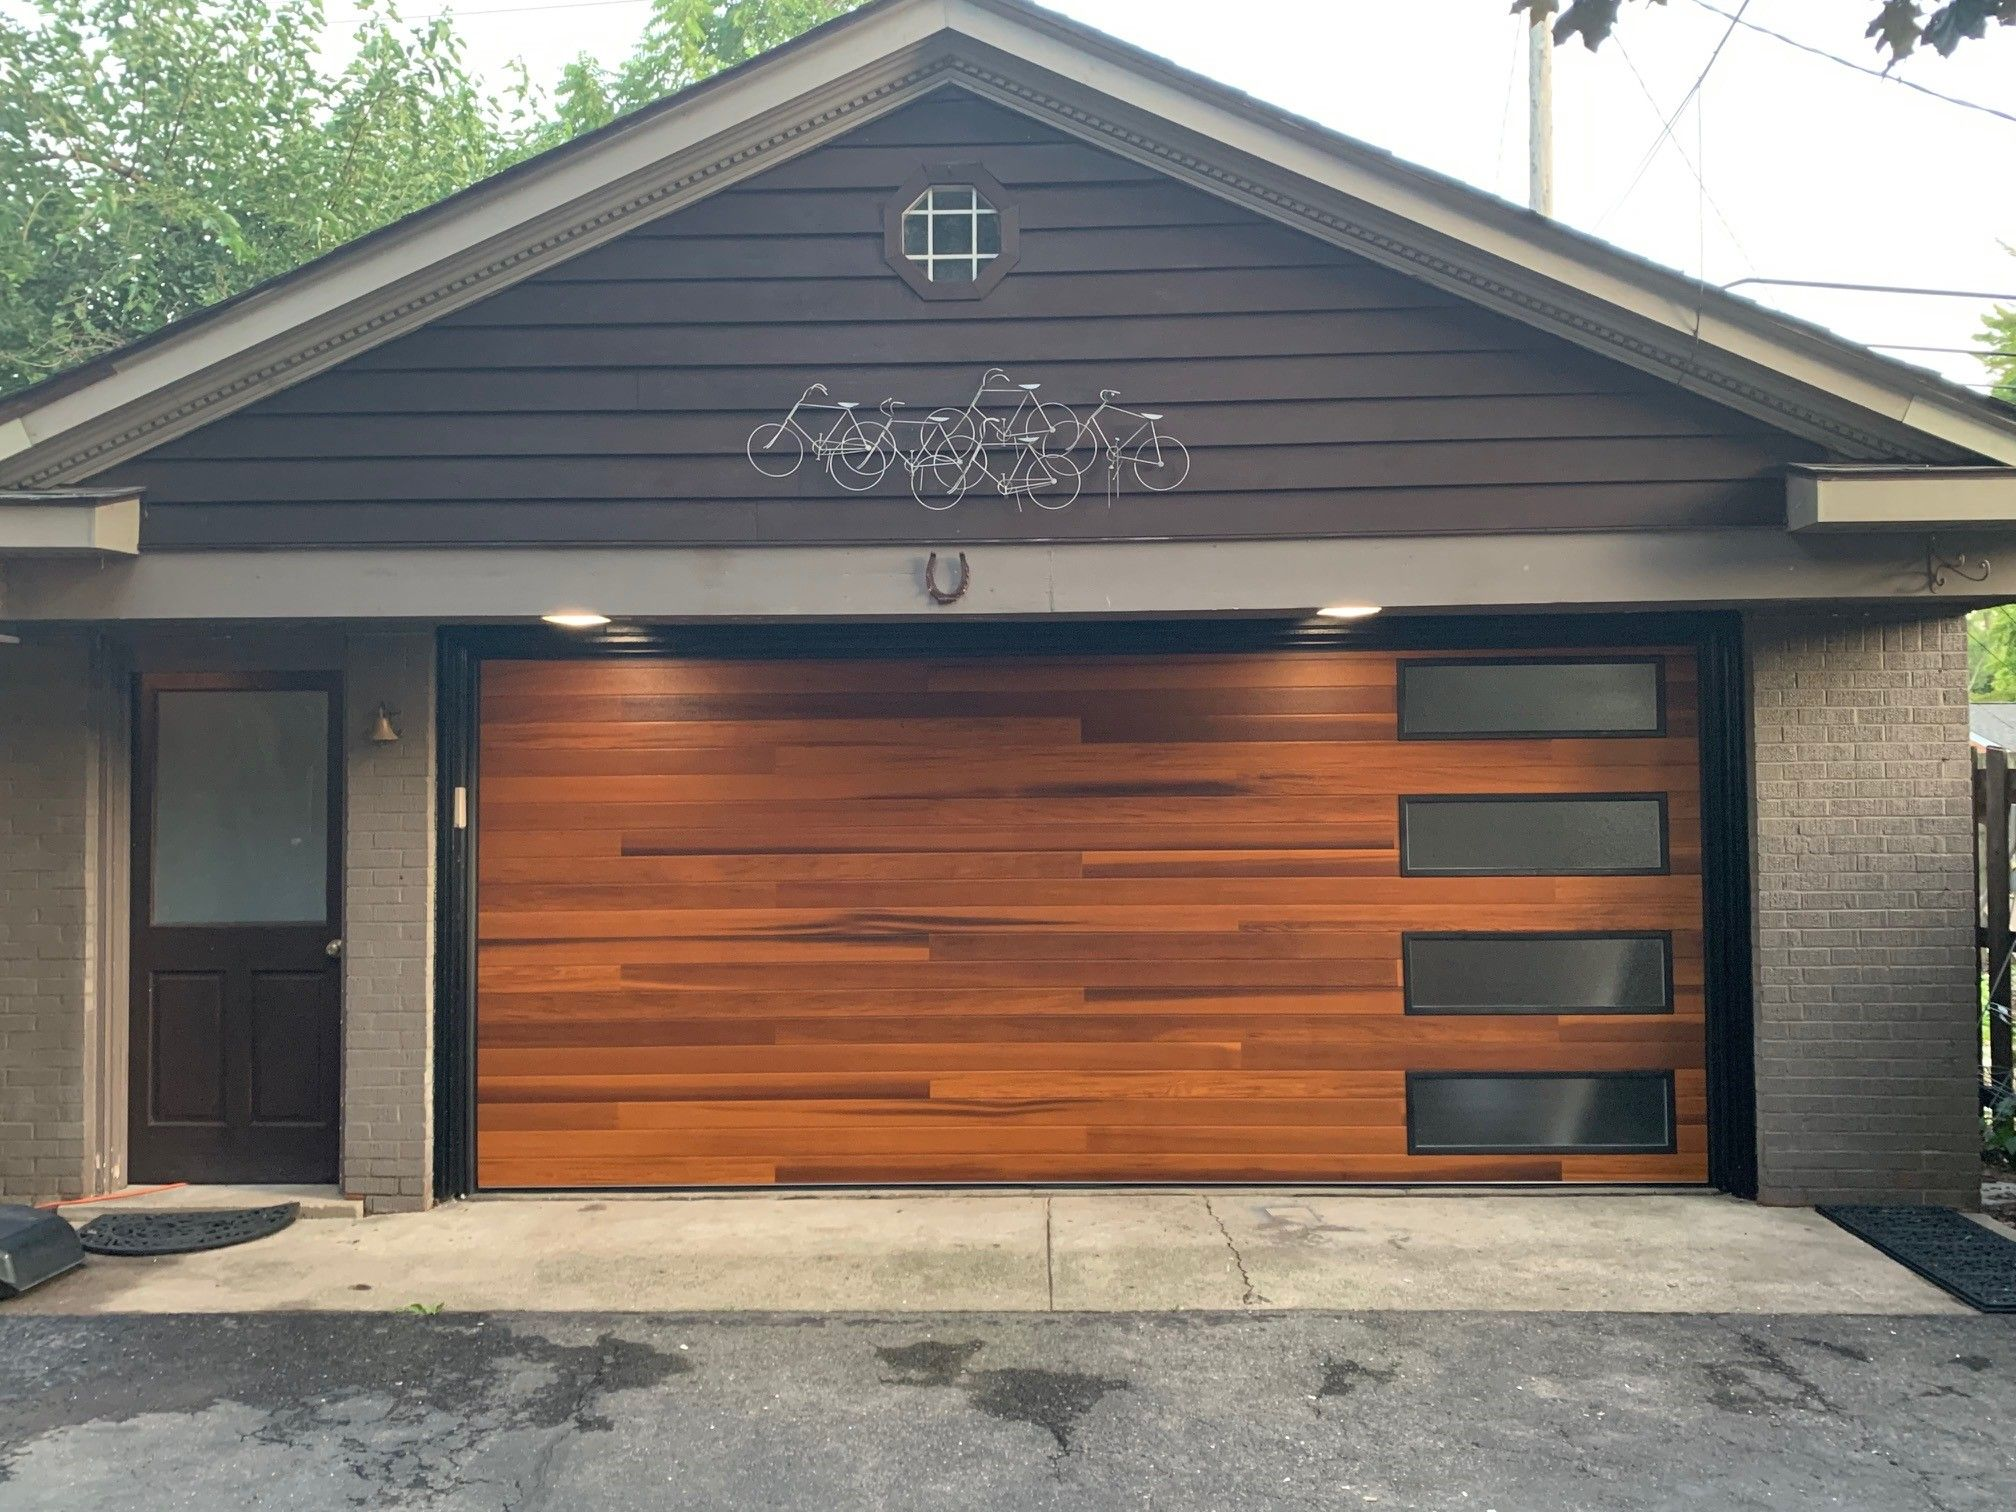 Planks Garage Door In Cedar Accents Woodtones By C H I Overhead Doors Garage Door Design Modern Garage Doors Garage Doors